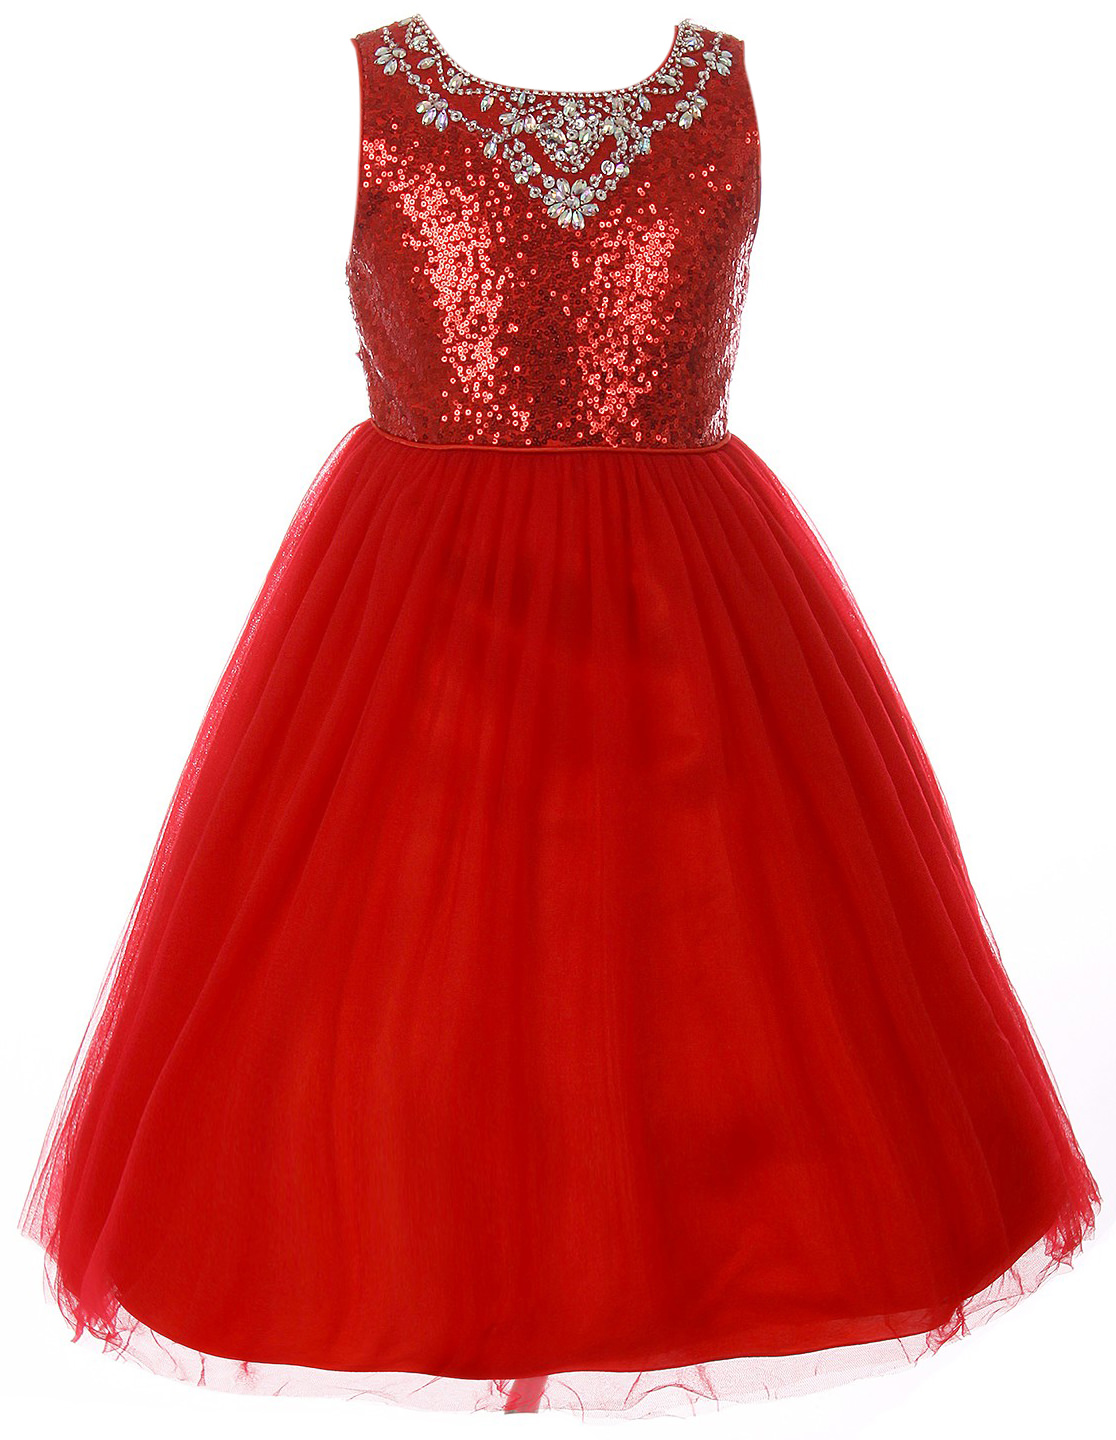 8ee3602e38d6 Dreamer P - Little Girls Dress Sparkle Sequin Tulle Holiday Pageant ...